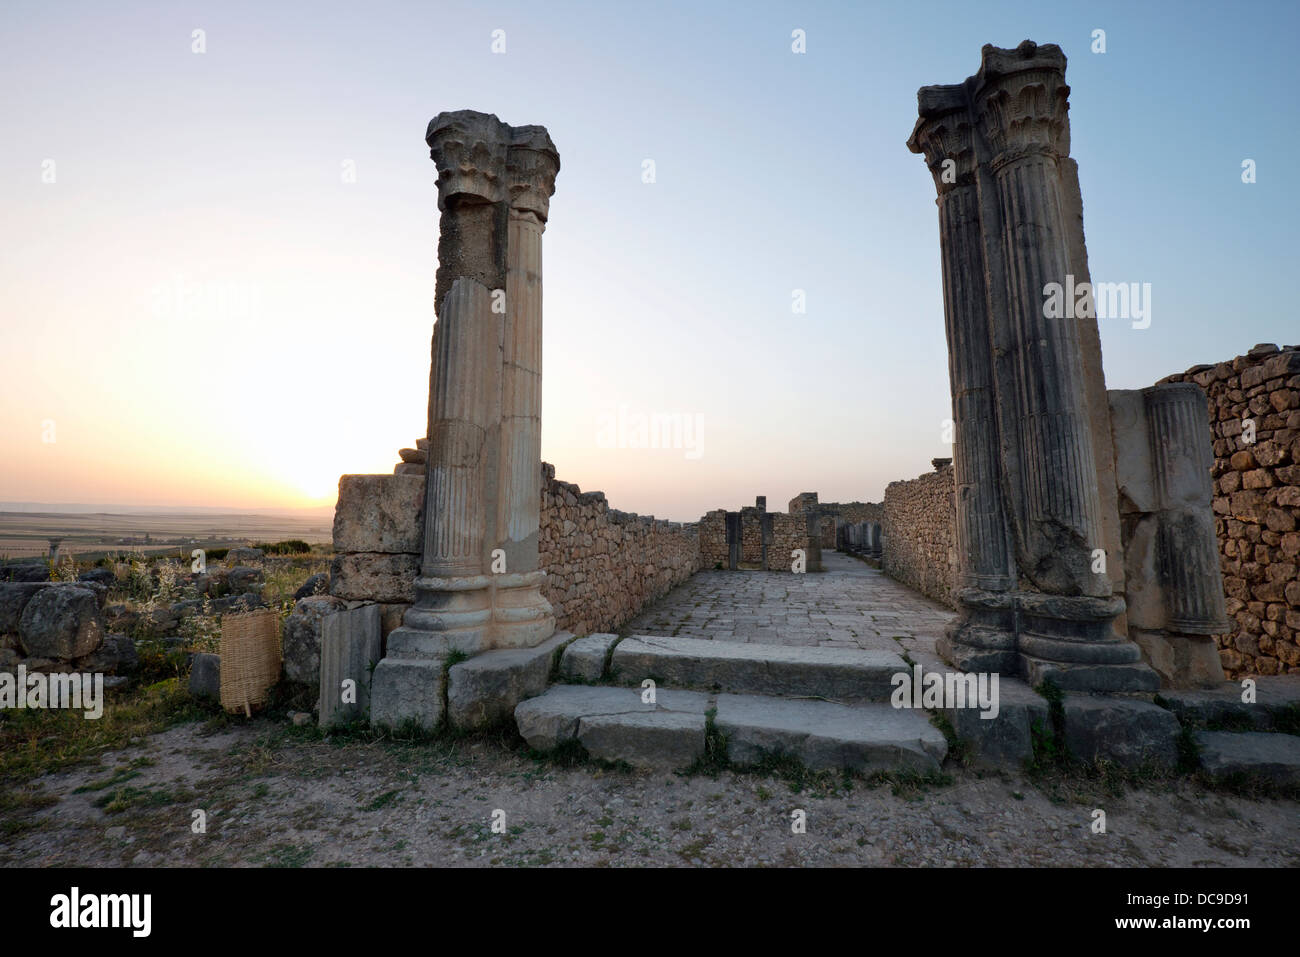 Ancient Roman ruins at sunset at the partially excavated Roman city of Volubilis near Meknes, Morocco. - Stock Image